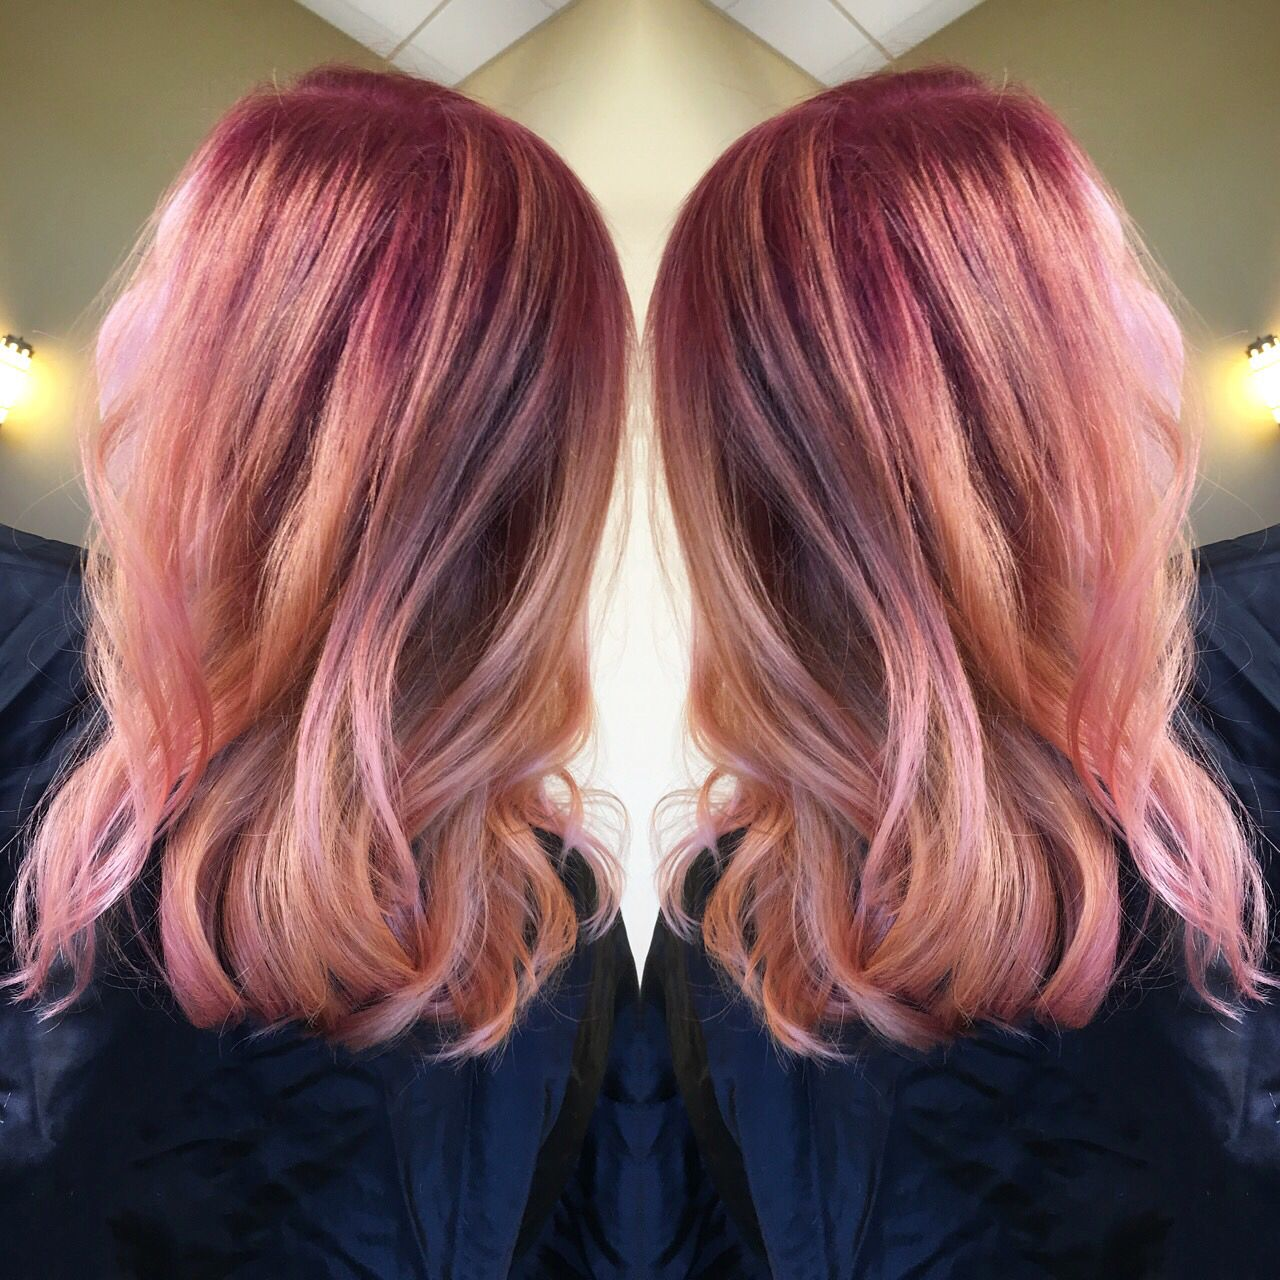 Rose Gold Hair With A Deep Red Root Rosegoldhair